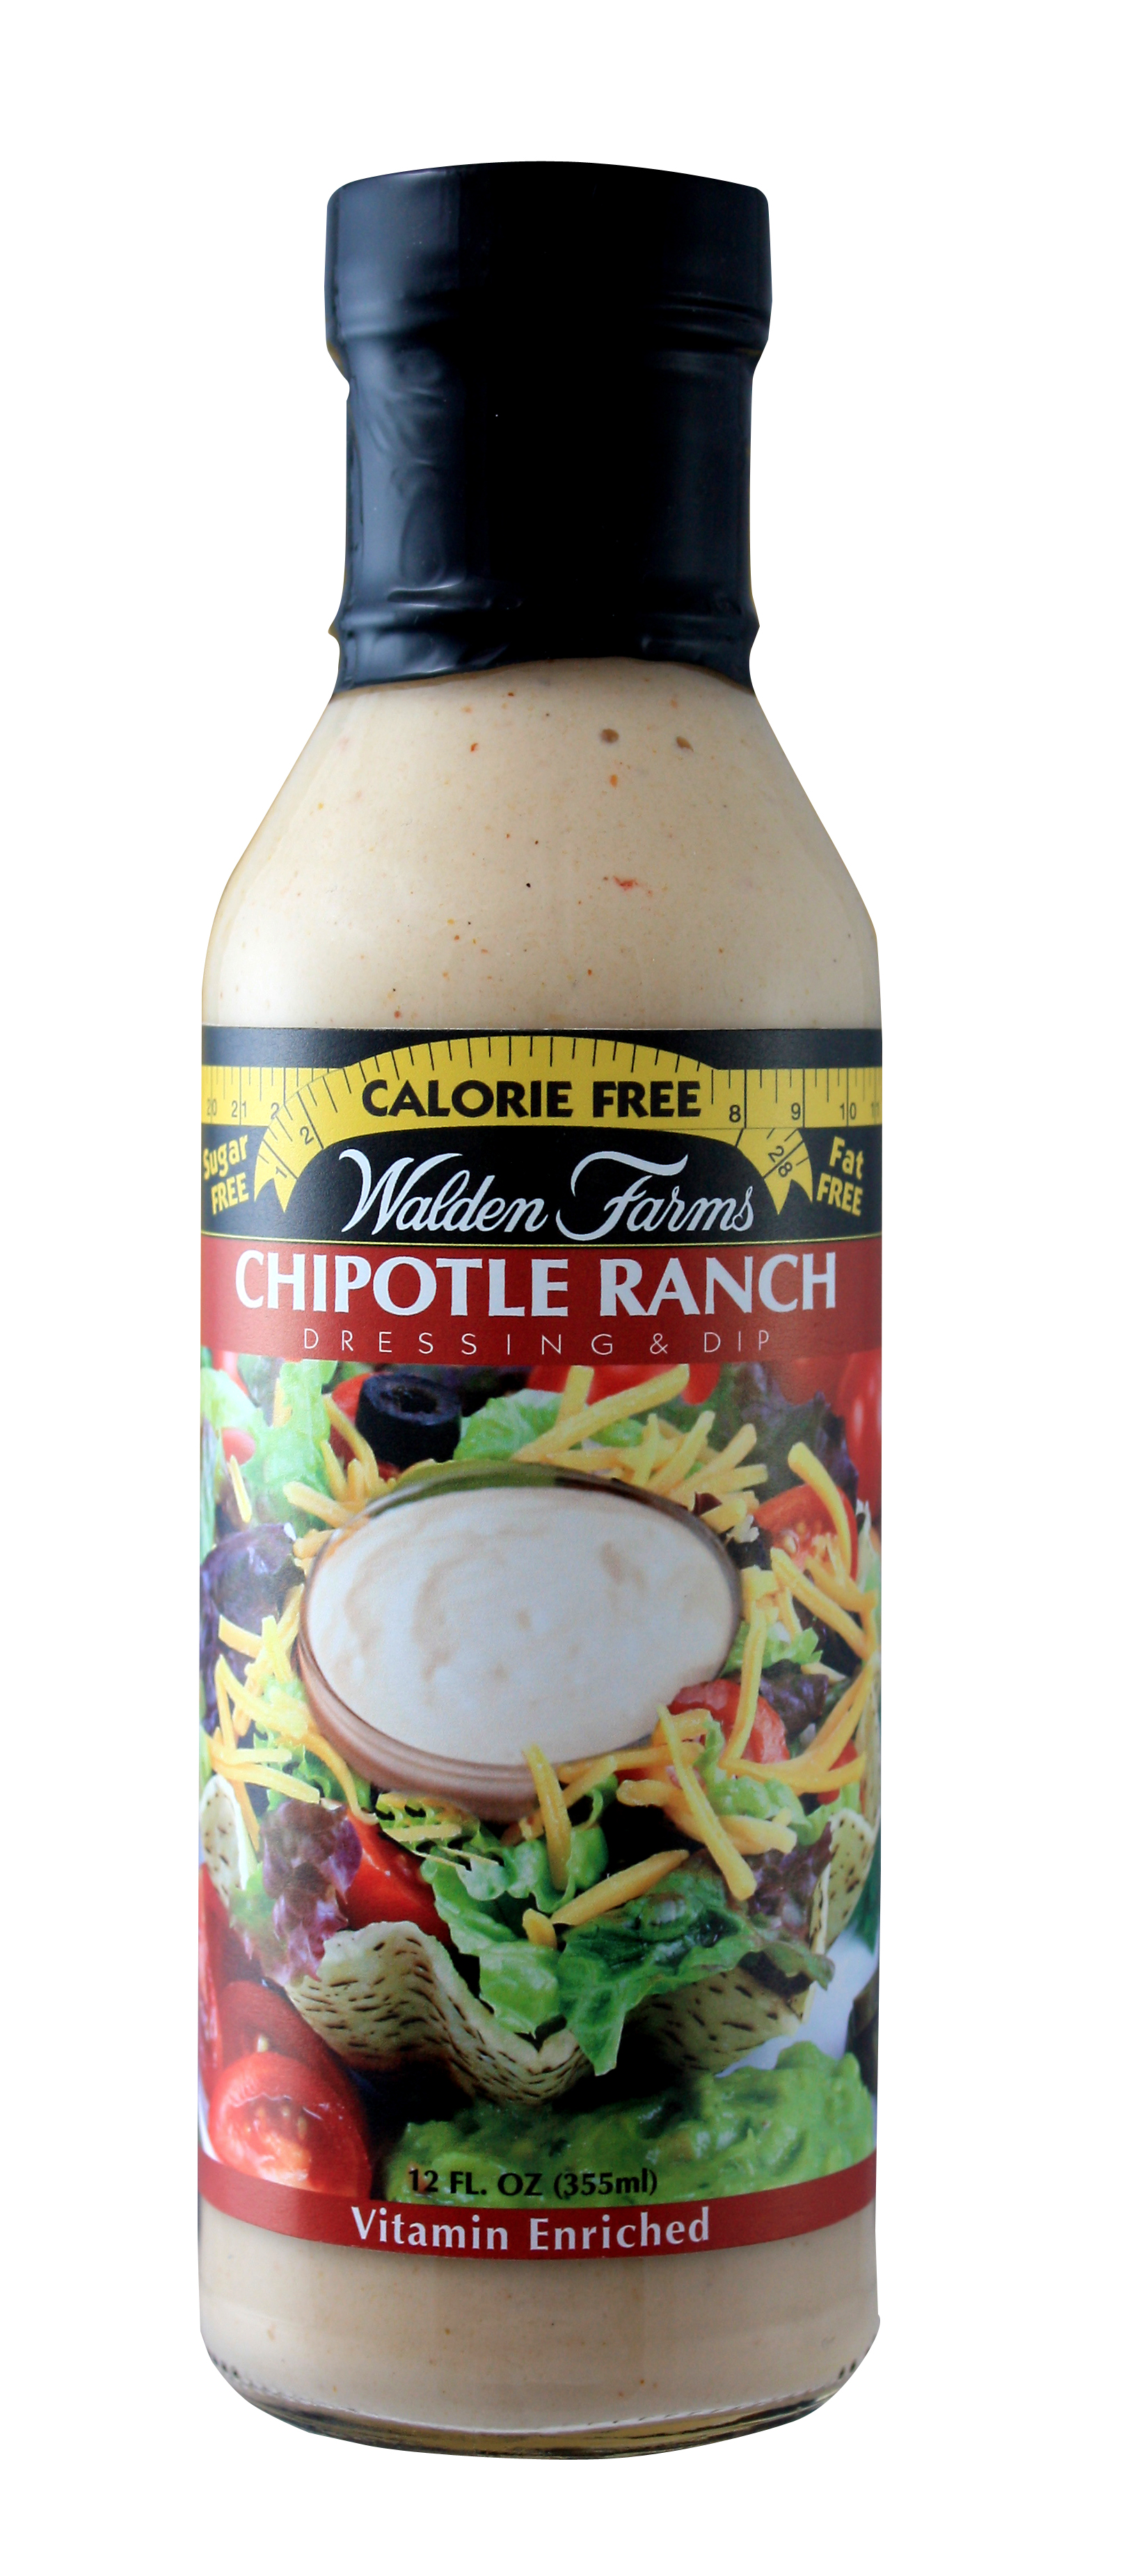 Chipotle Ranch Dressing & Dip